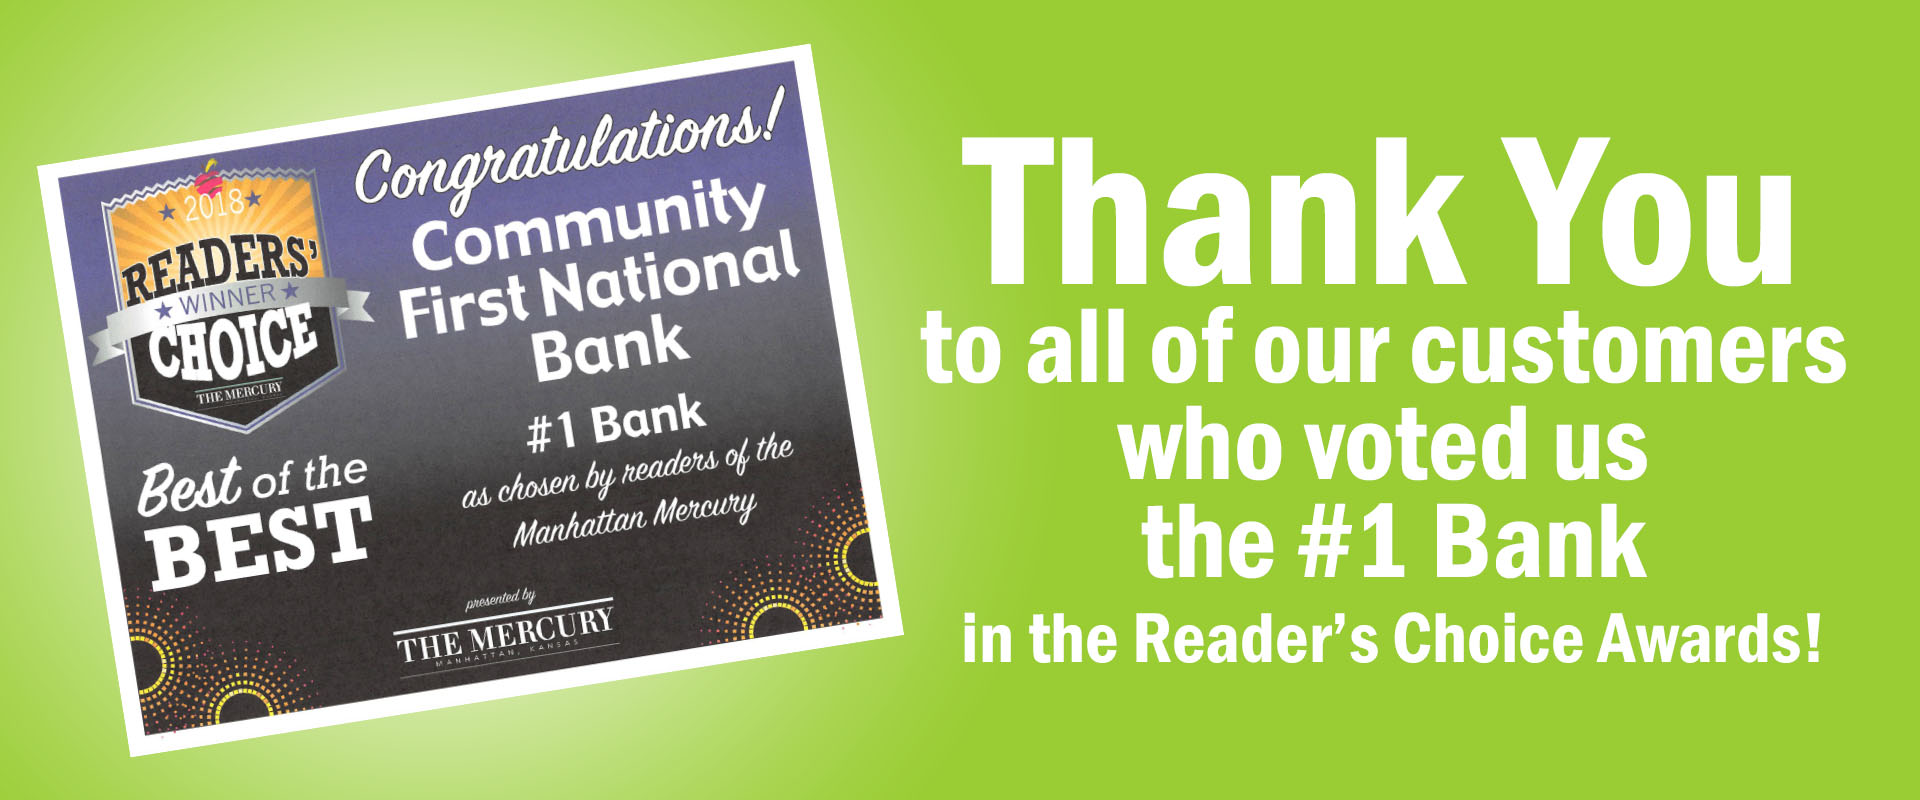 Thank you to all of our customers who voted us the #1 Bank in the Reader's Choice Awards!